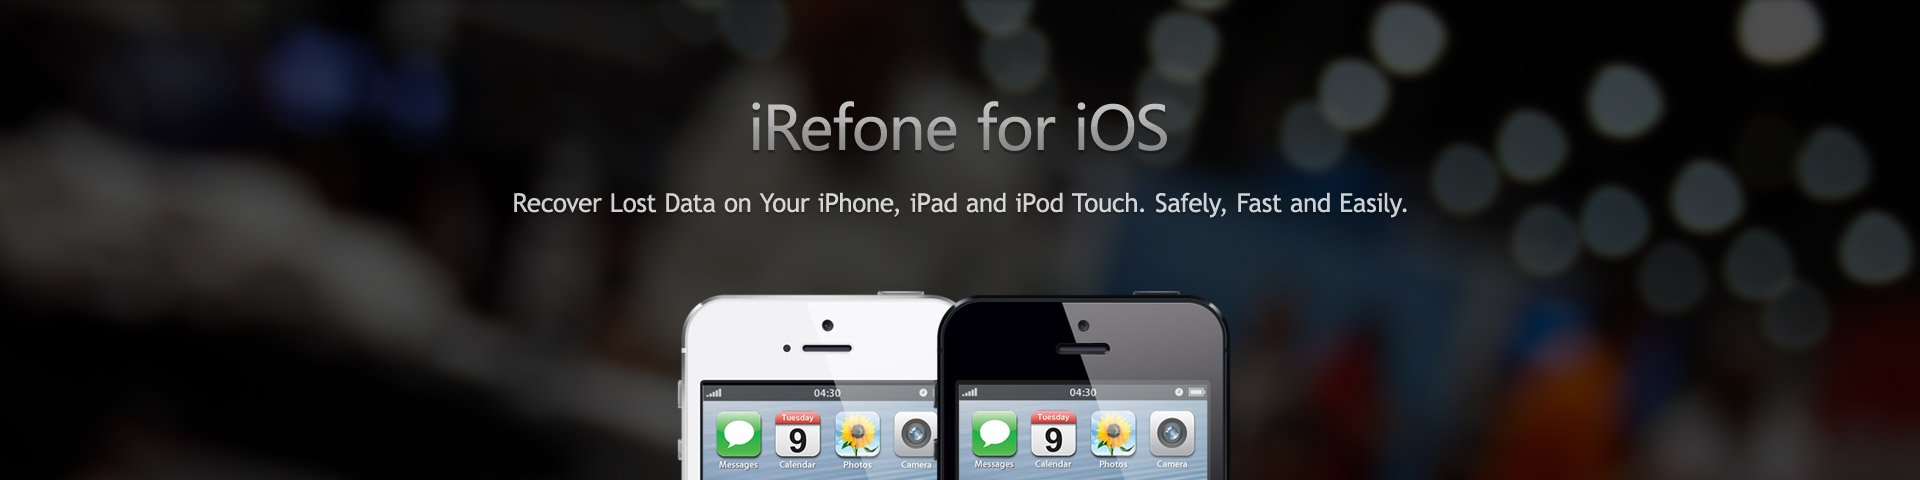 Recover Lost Data on Your iOS Device. Safely, Fast and Easily.